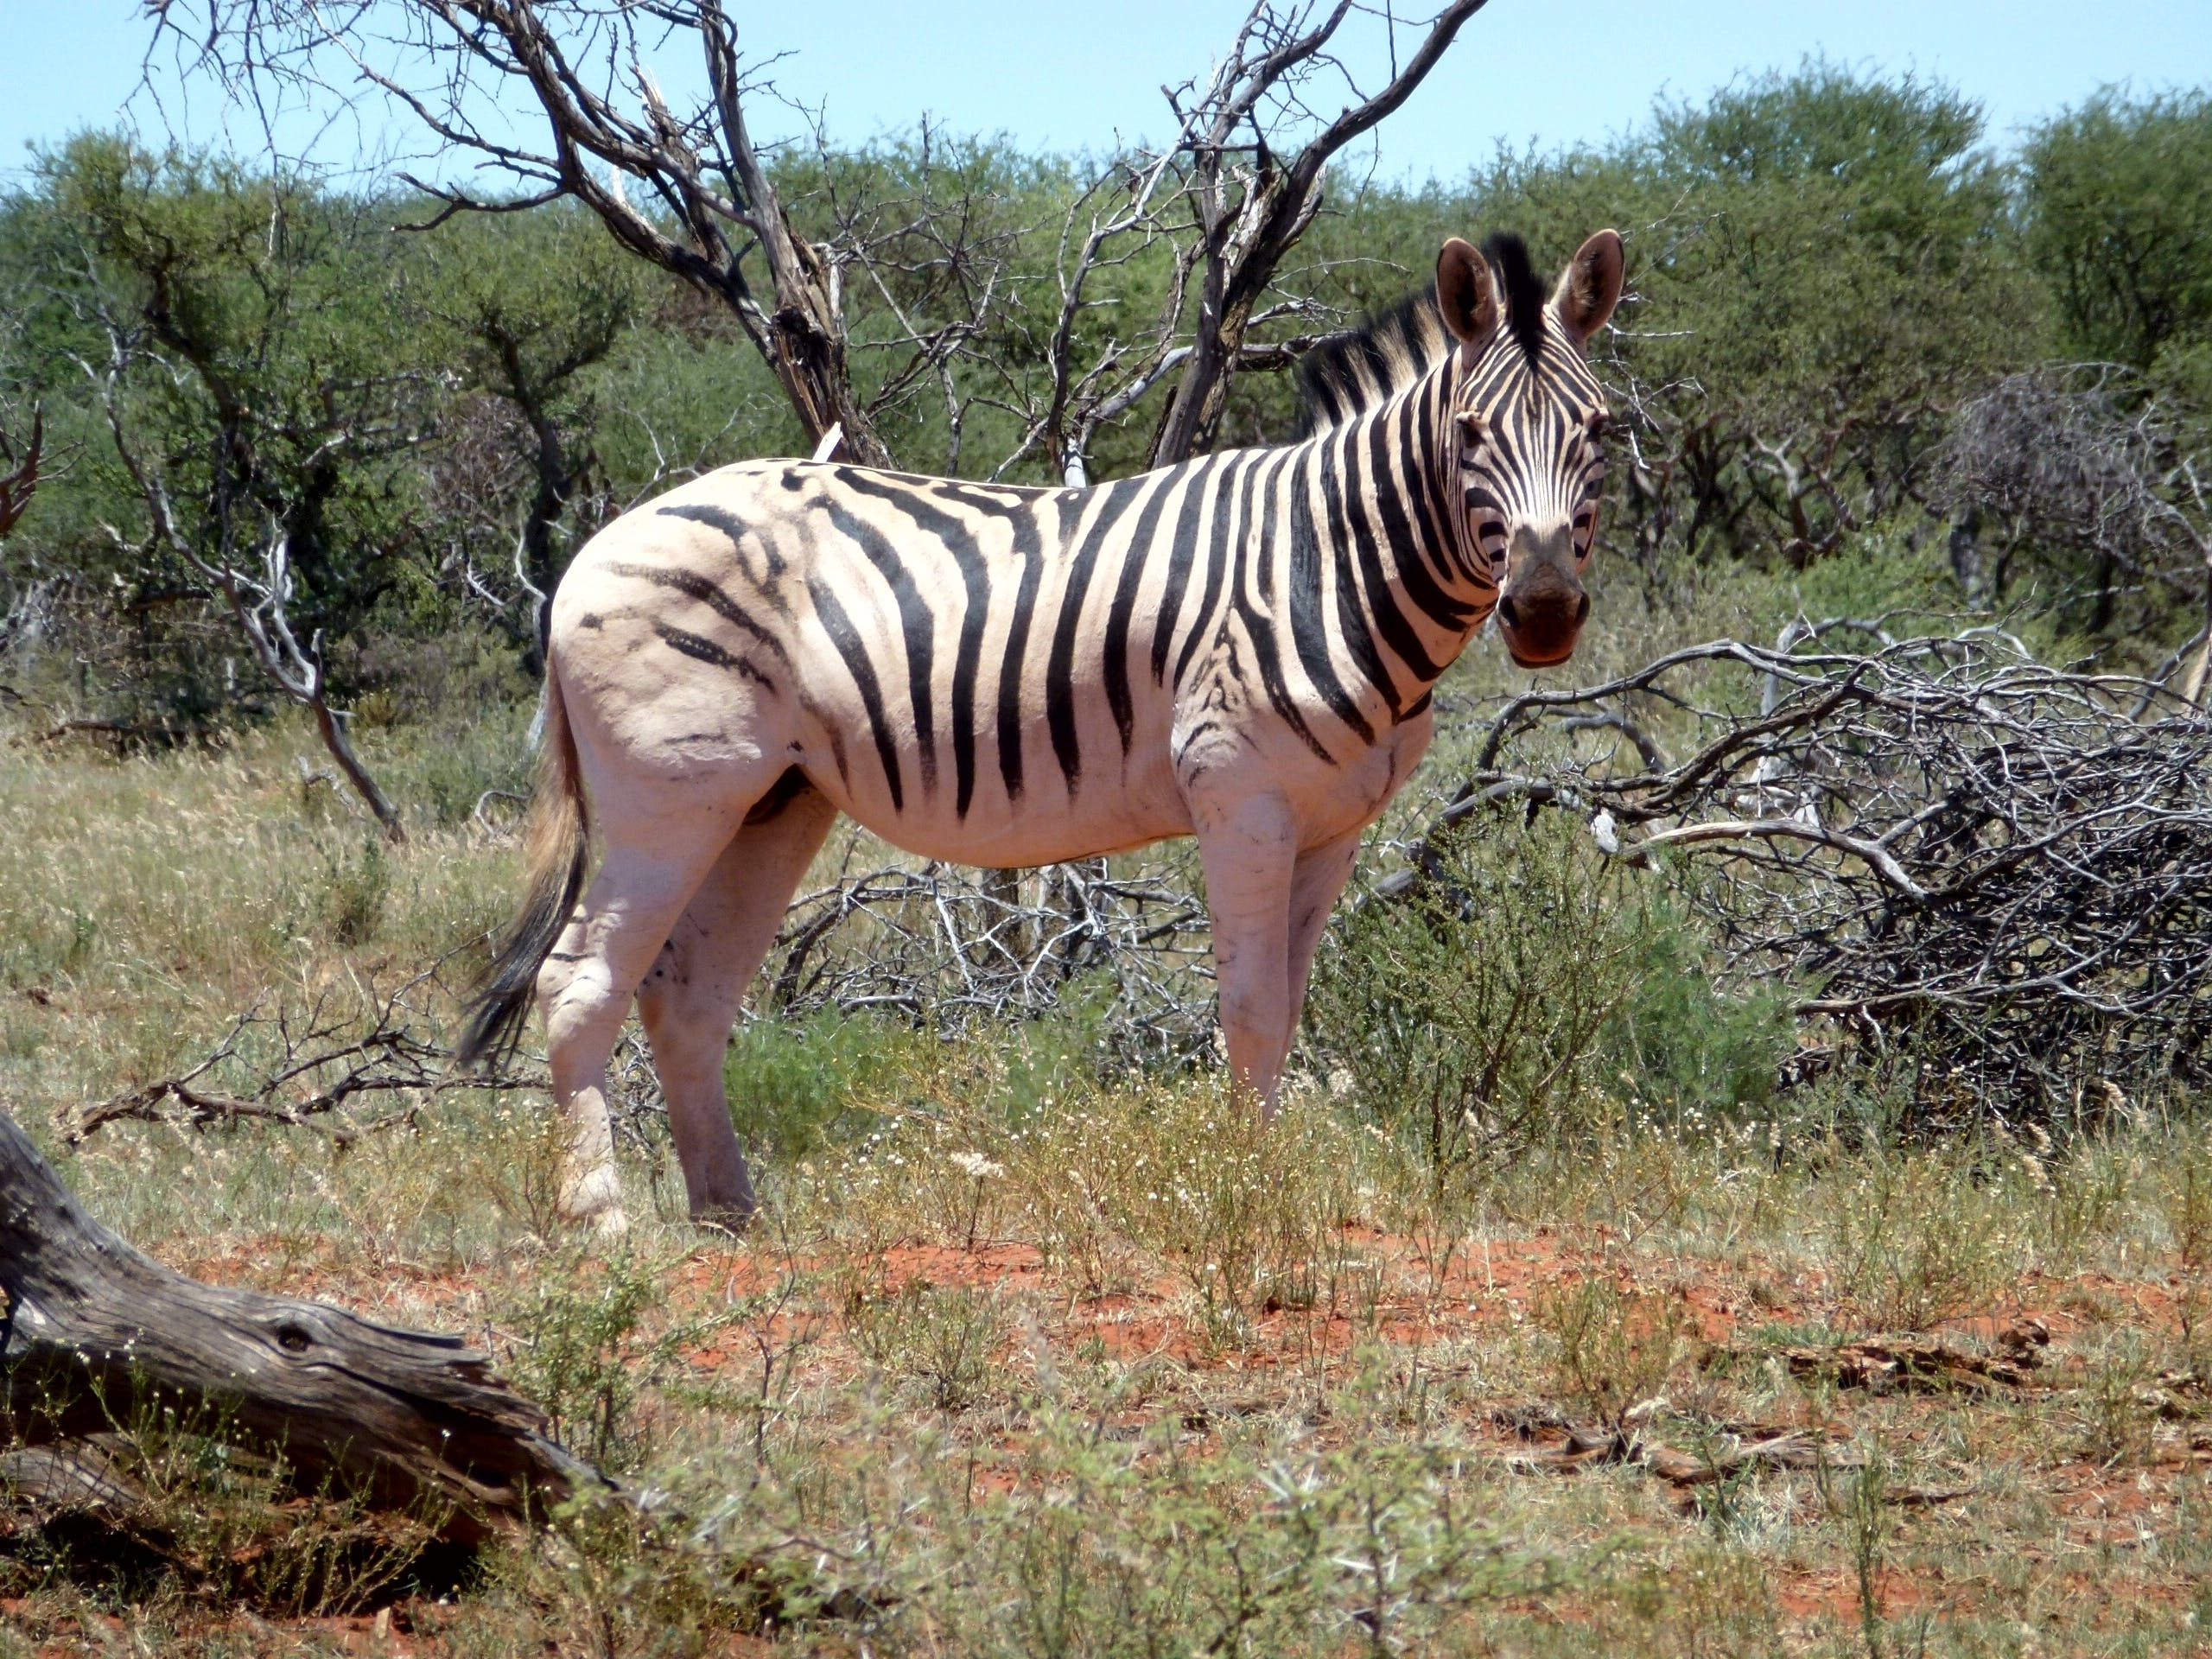 Zebra Near Log and Bushes